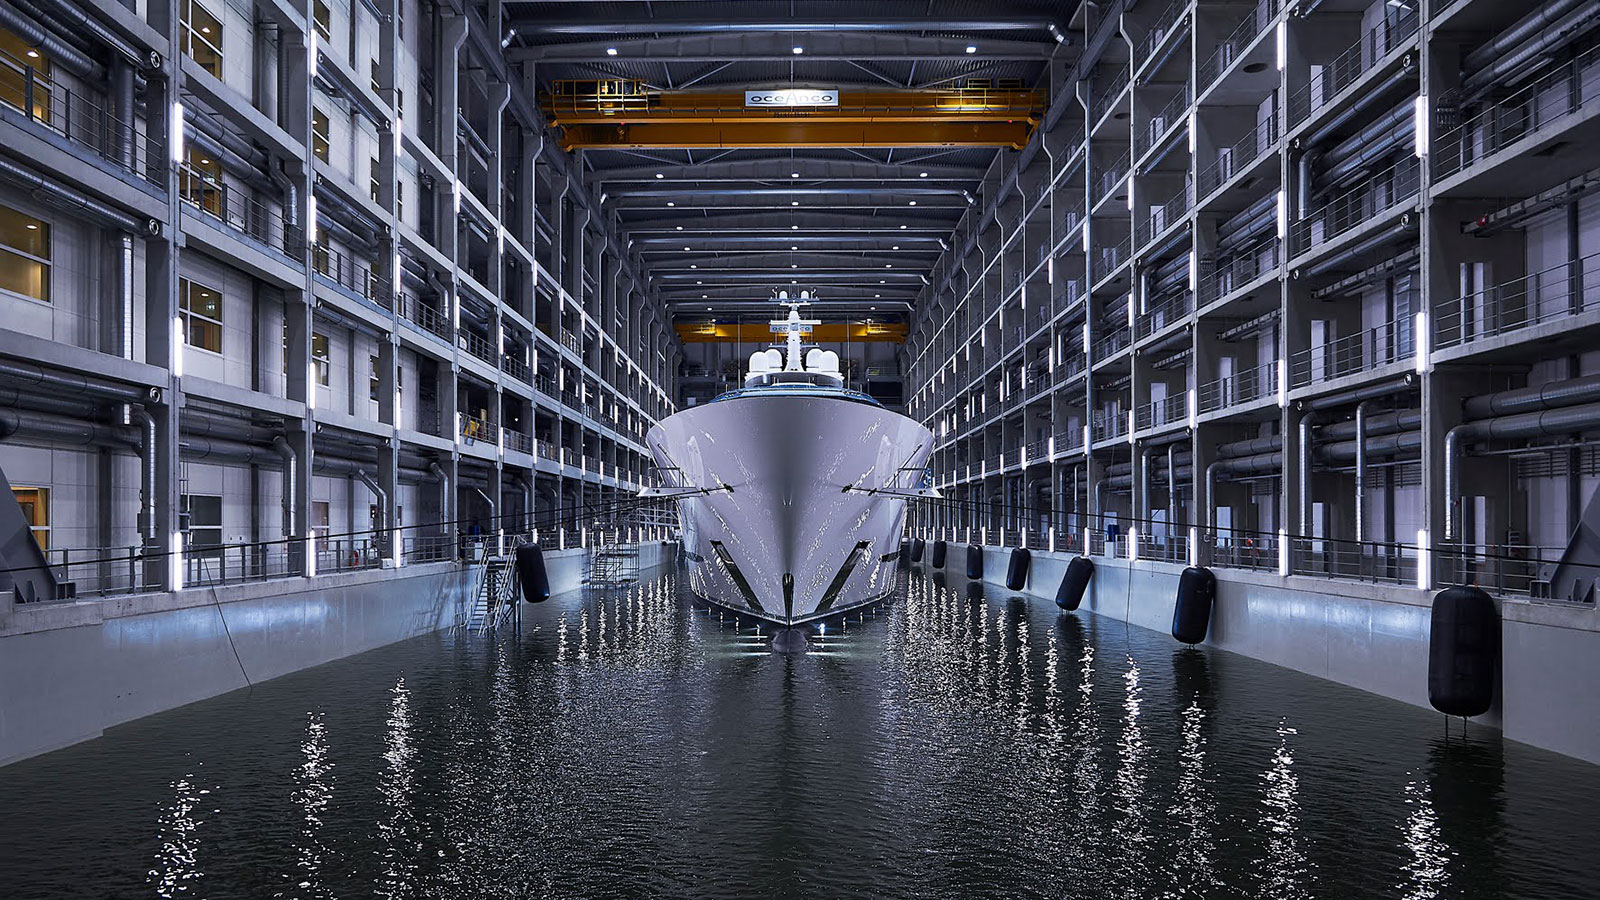 bow-view-of-in-build-oceanco-superyacht-project-jubilee